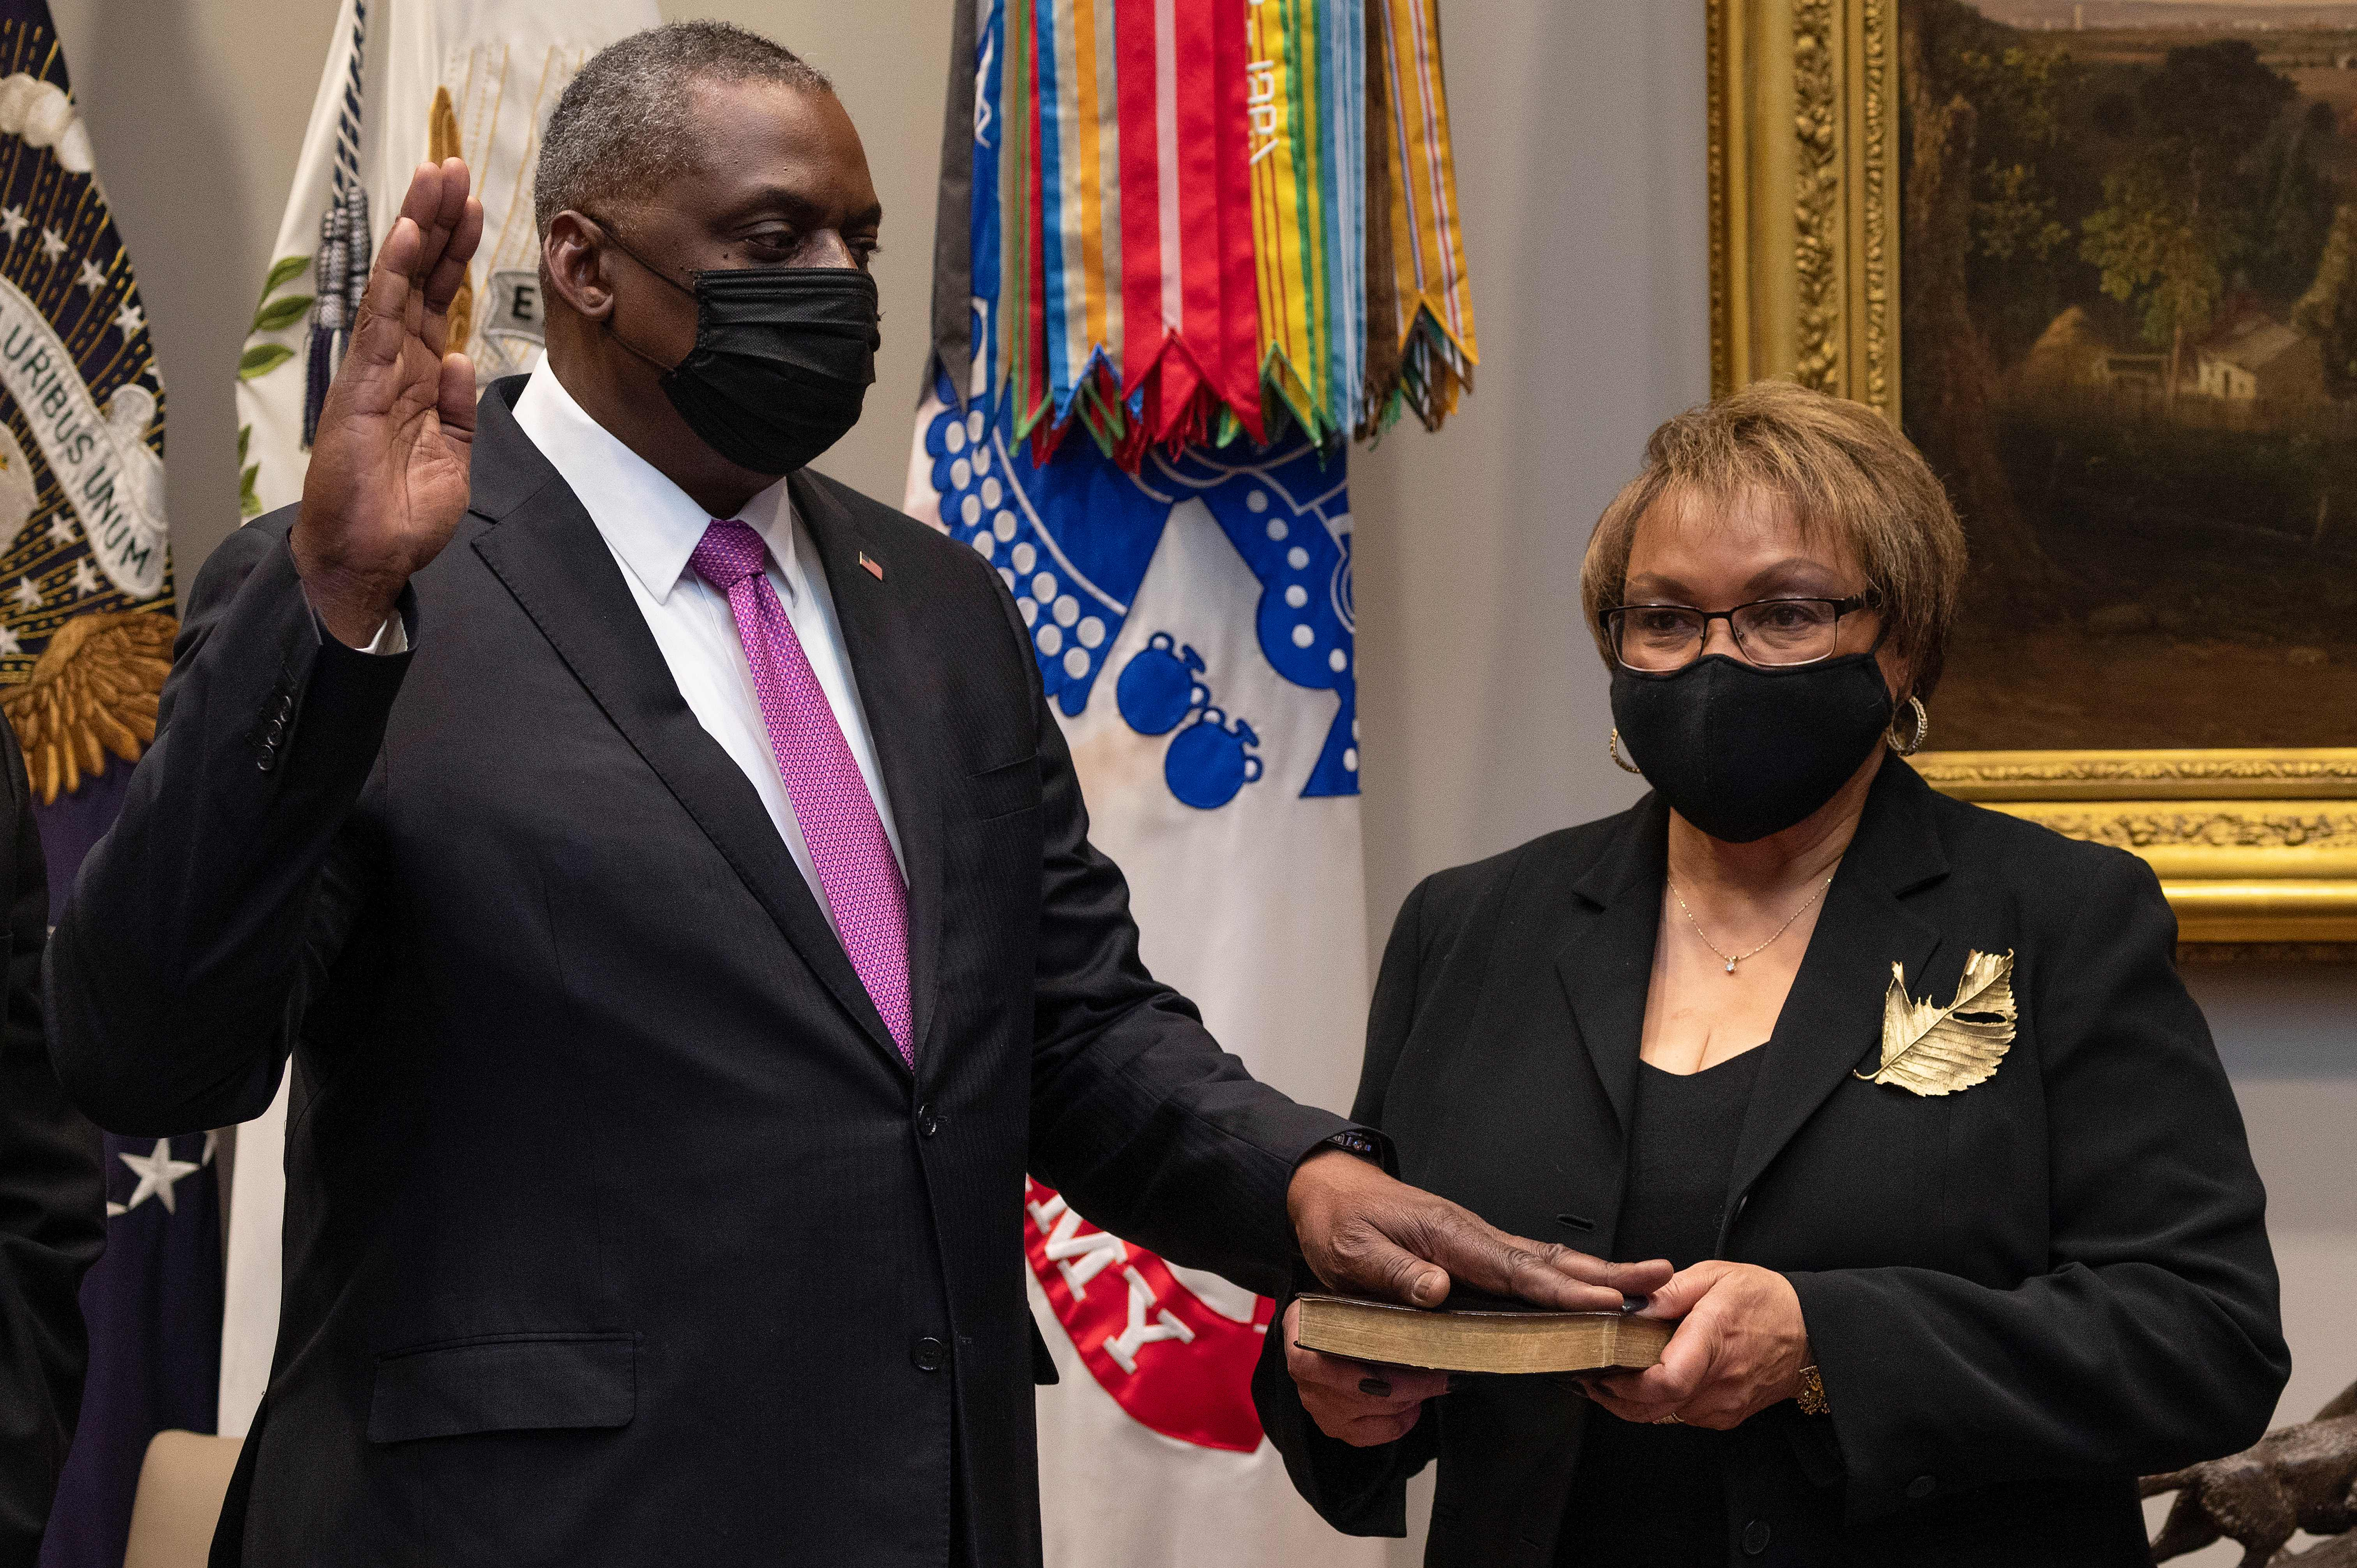 Lloyd Austin, a retired U.S. Army four-star general, is sworn in as Secretary of Defense as his wife, Charlene Austin, holds the Bible in Washington D.C. on Jan. 25, 2021.